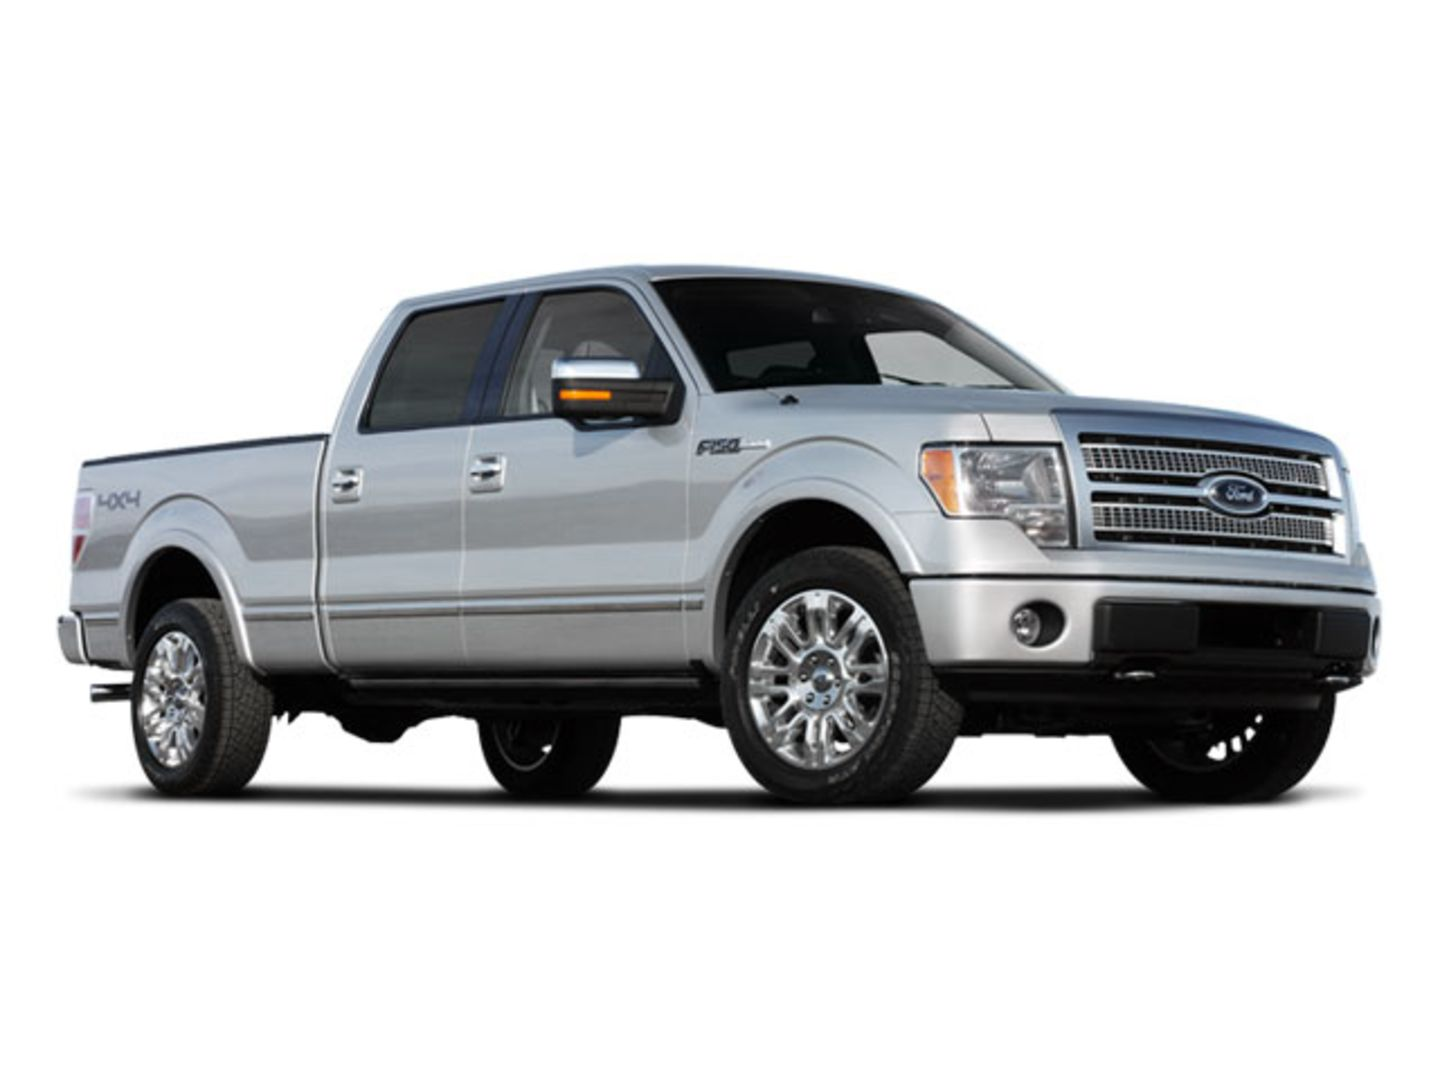 2009 Ford F-150 XLT for sale in Mississauga, Ontario